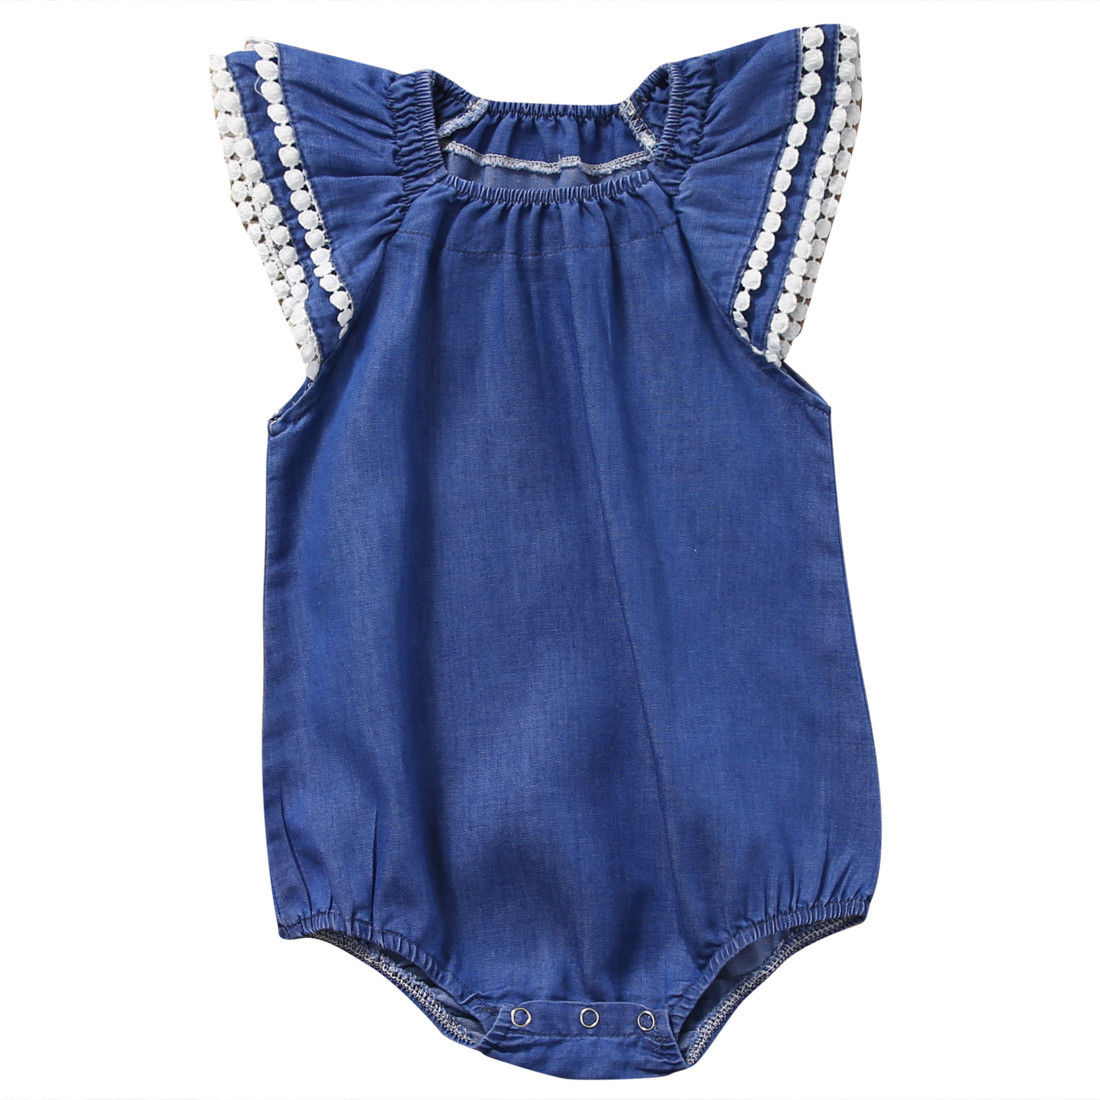 Lovely Toddler Kids Baby Girls Romper Clothes Denim Rompers Flutter Sleeve Sunsuit Outfits